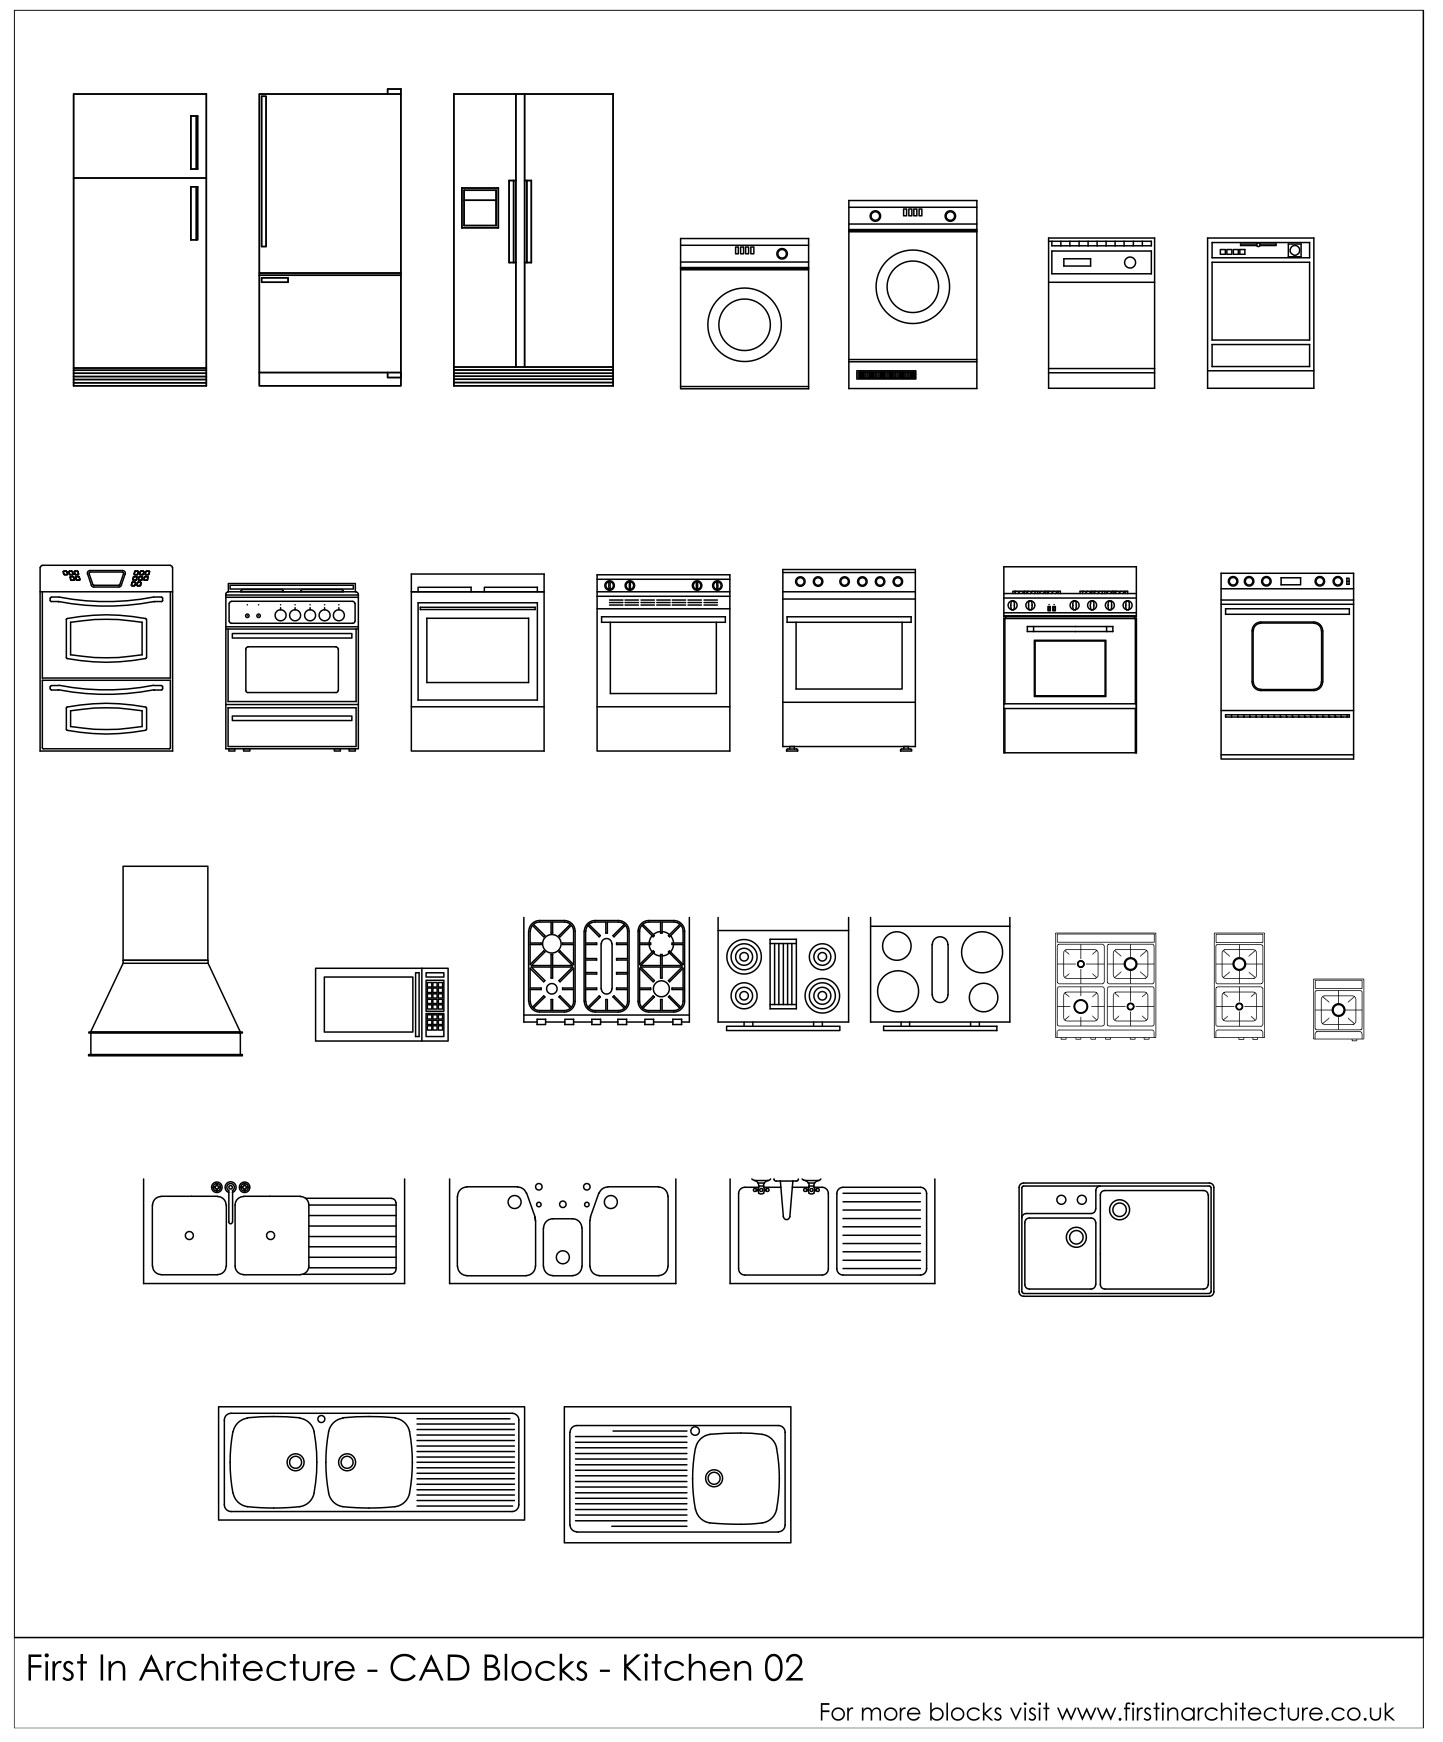 Free Cad Blocks Kitchen Appliances 02 First In